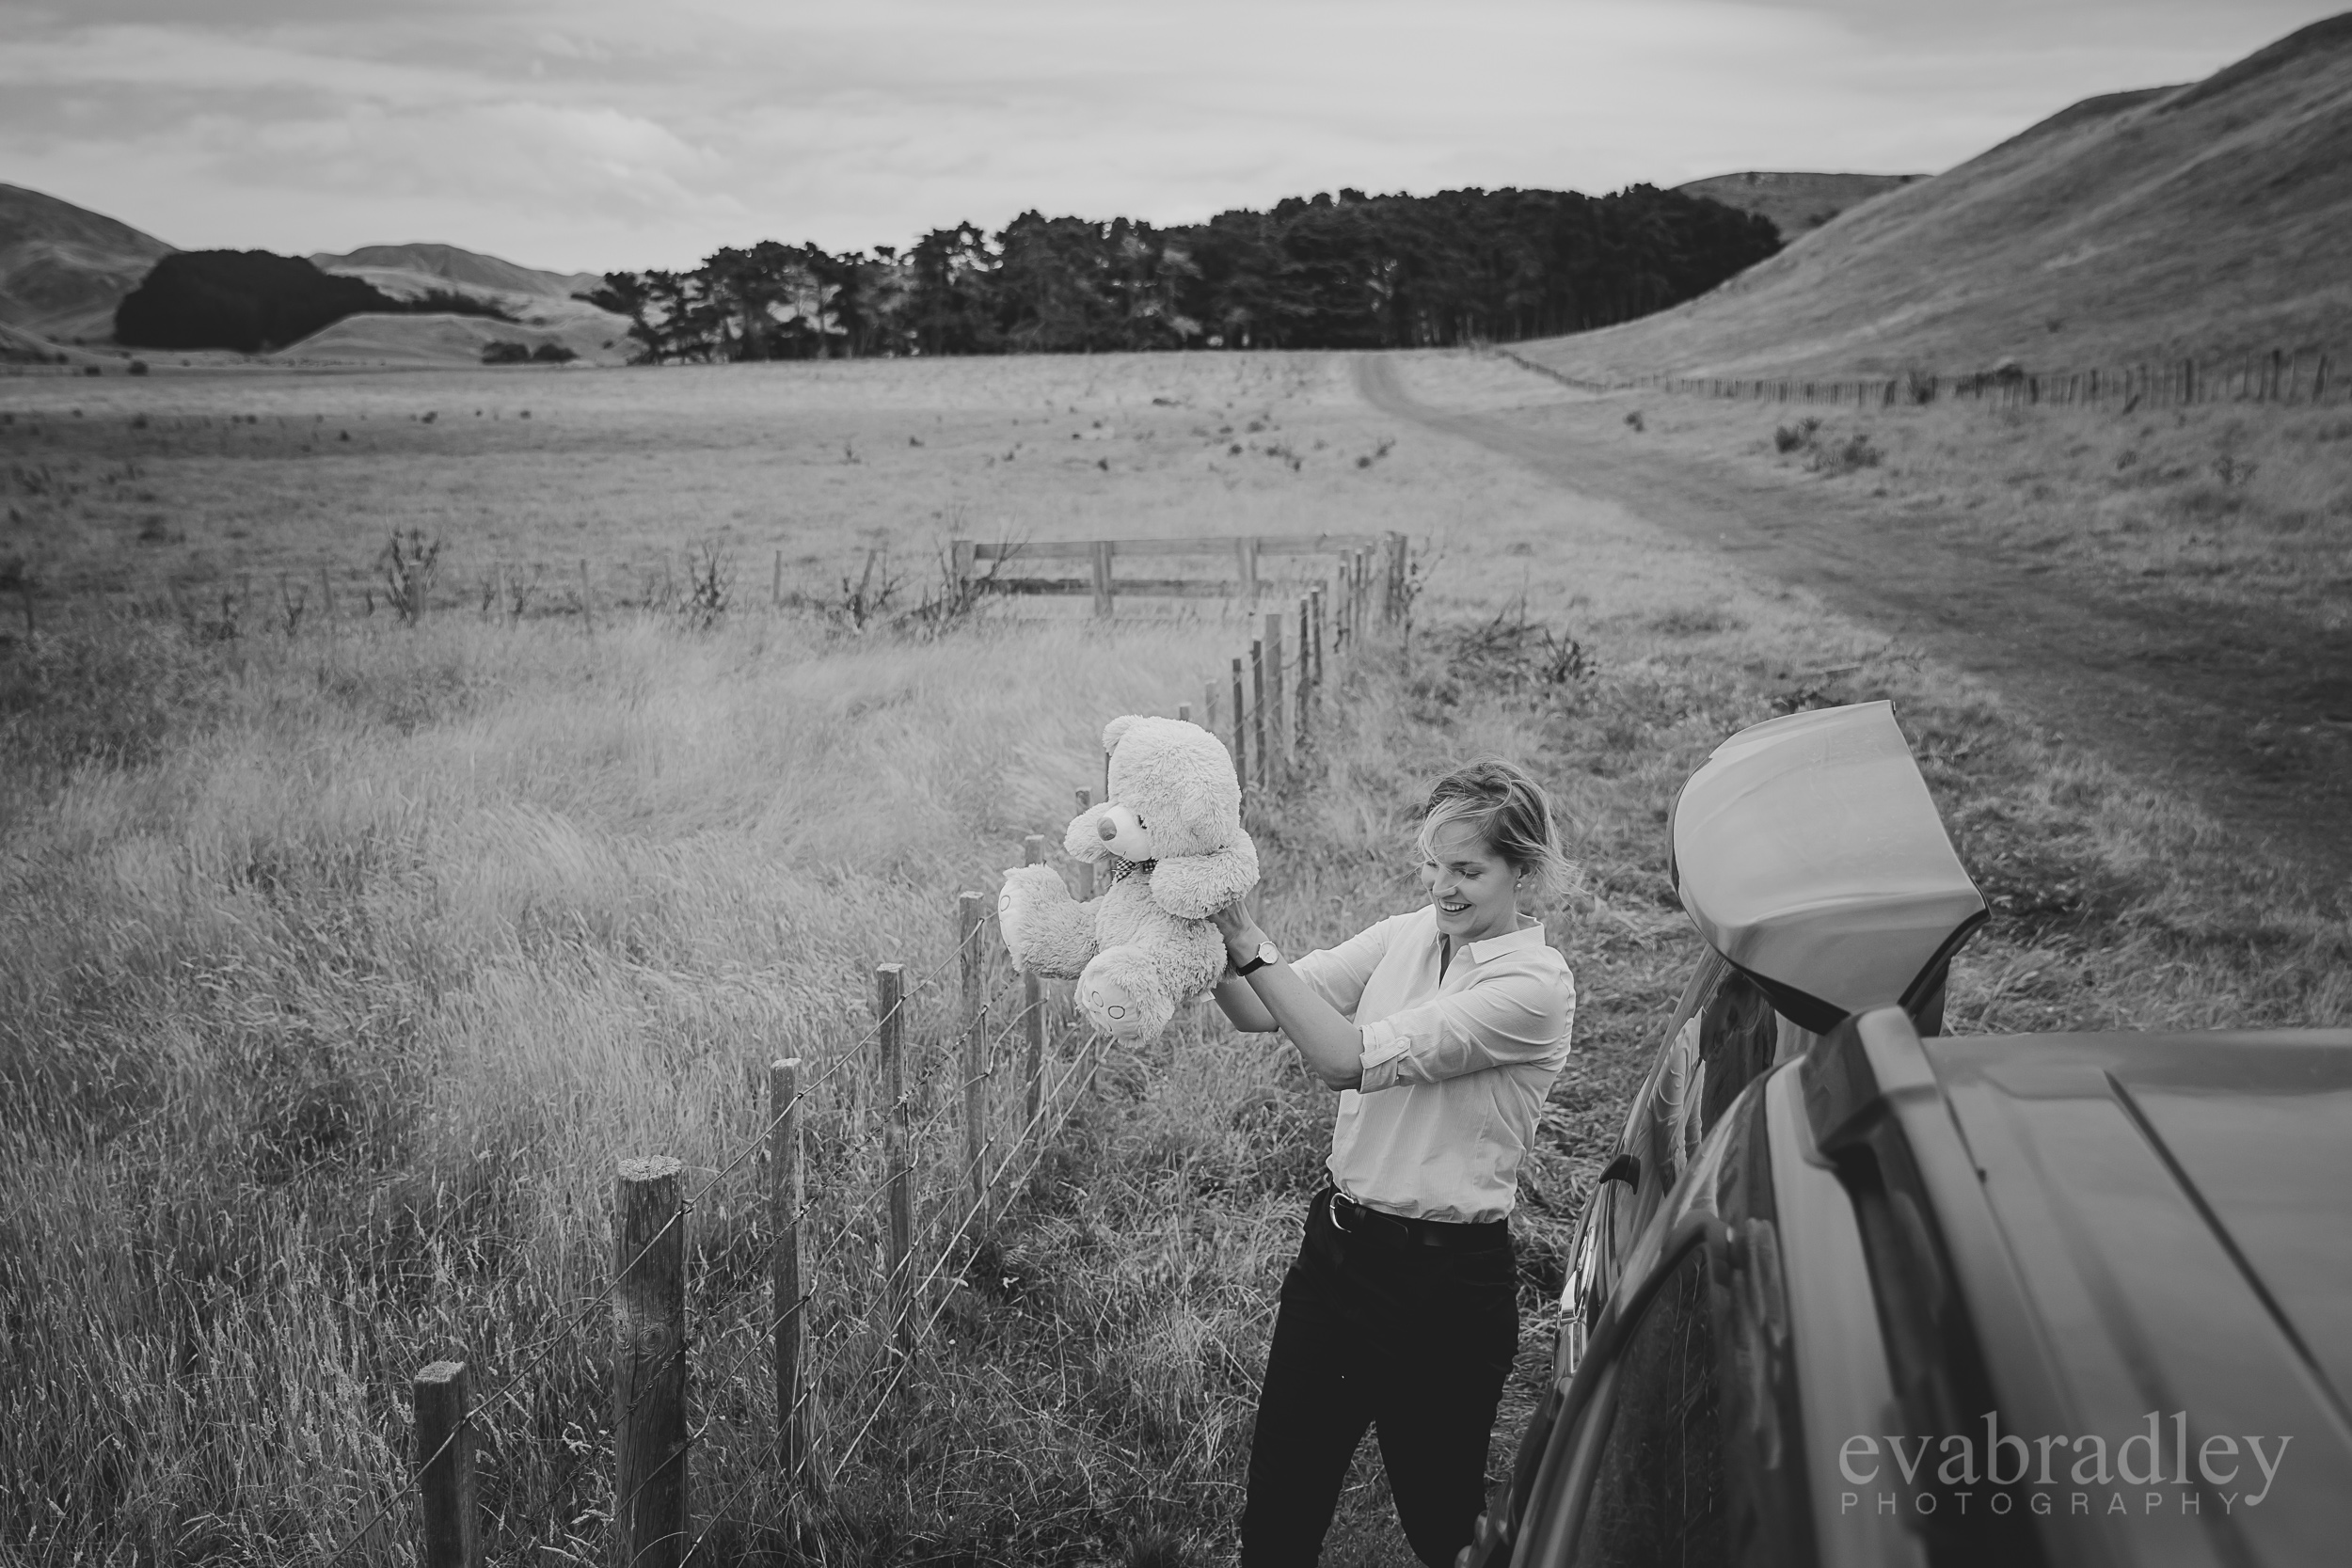 weddings-at-the-farm-cape-kidnappers-nz